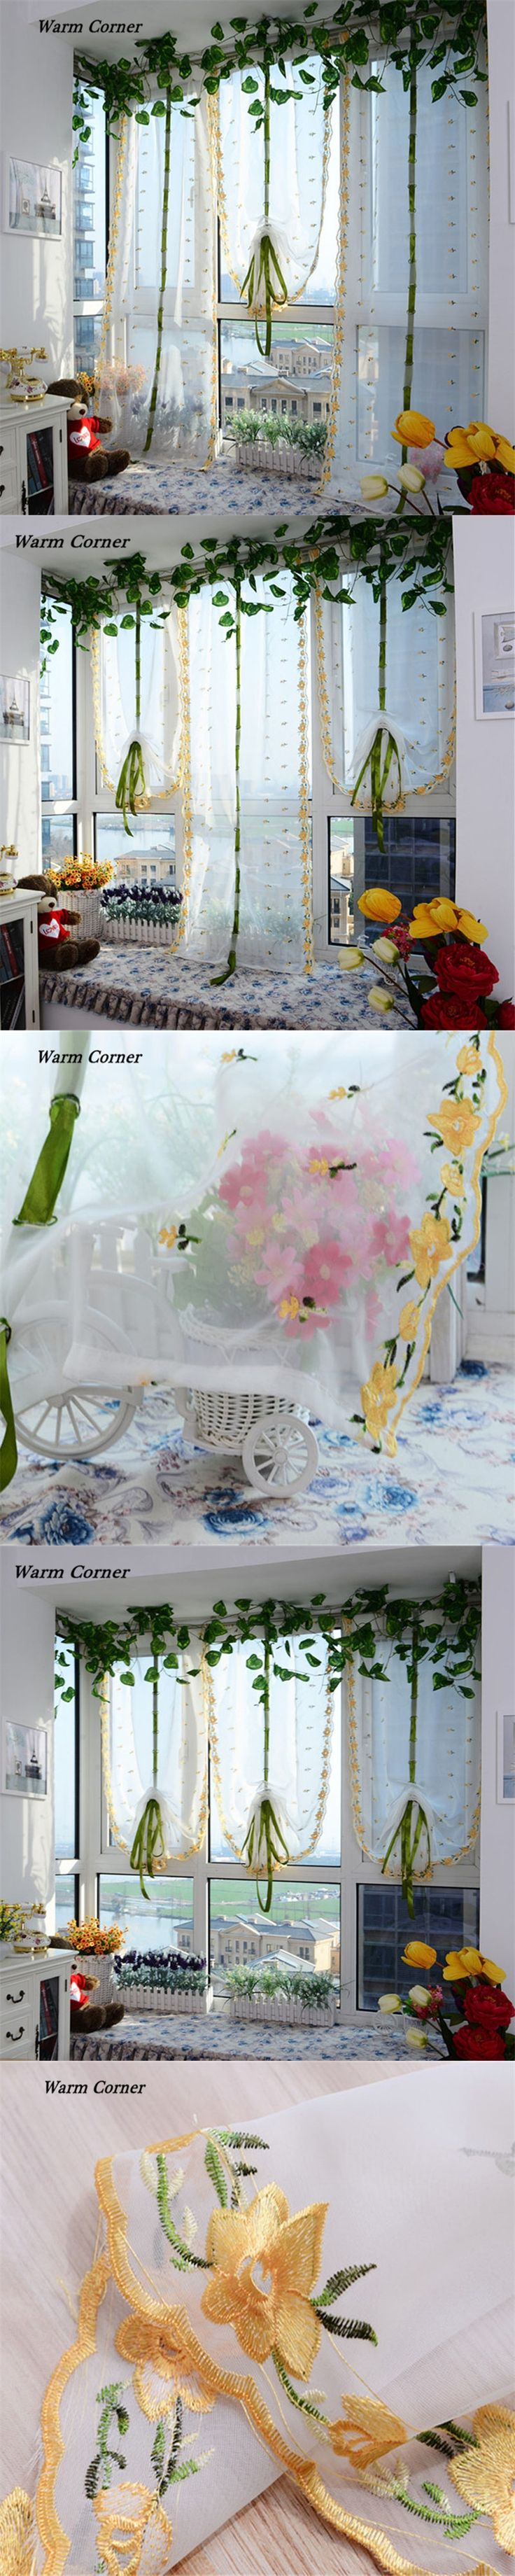 Warm Corner LM  Embroidered Flower Tulle Window Screens Door Balcony Curtain Panel Sheer Scarfs Free Shipping Sept 2